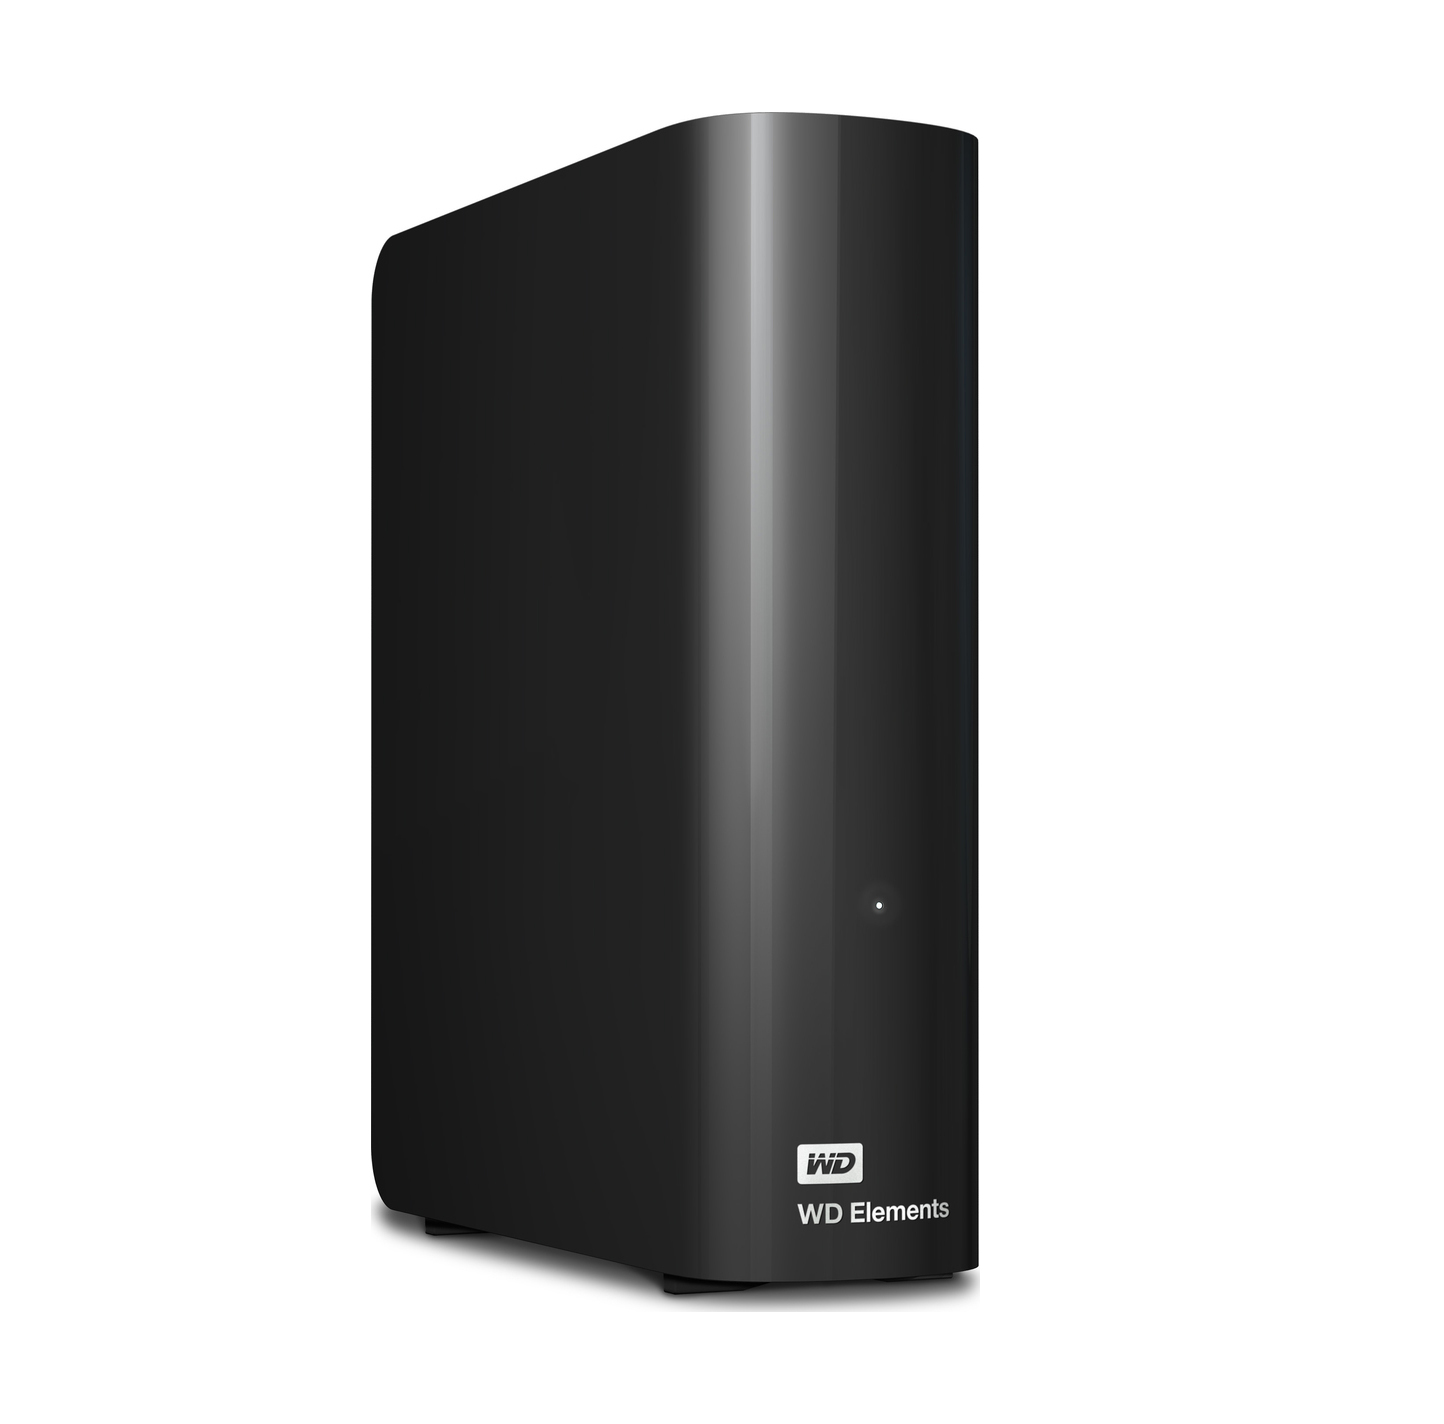 Western Digital Elements Desktop 4TB Εξωτερικός Σκληρός Δίσκος USB 3.0 WDBWLG0040HBK-EESN